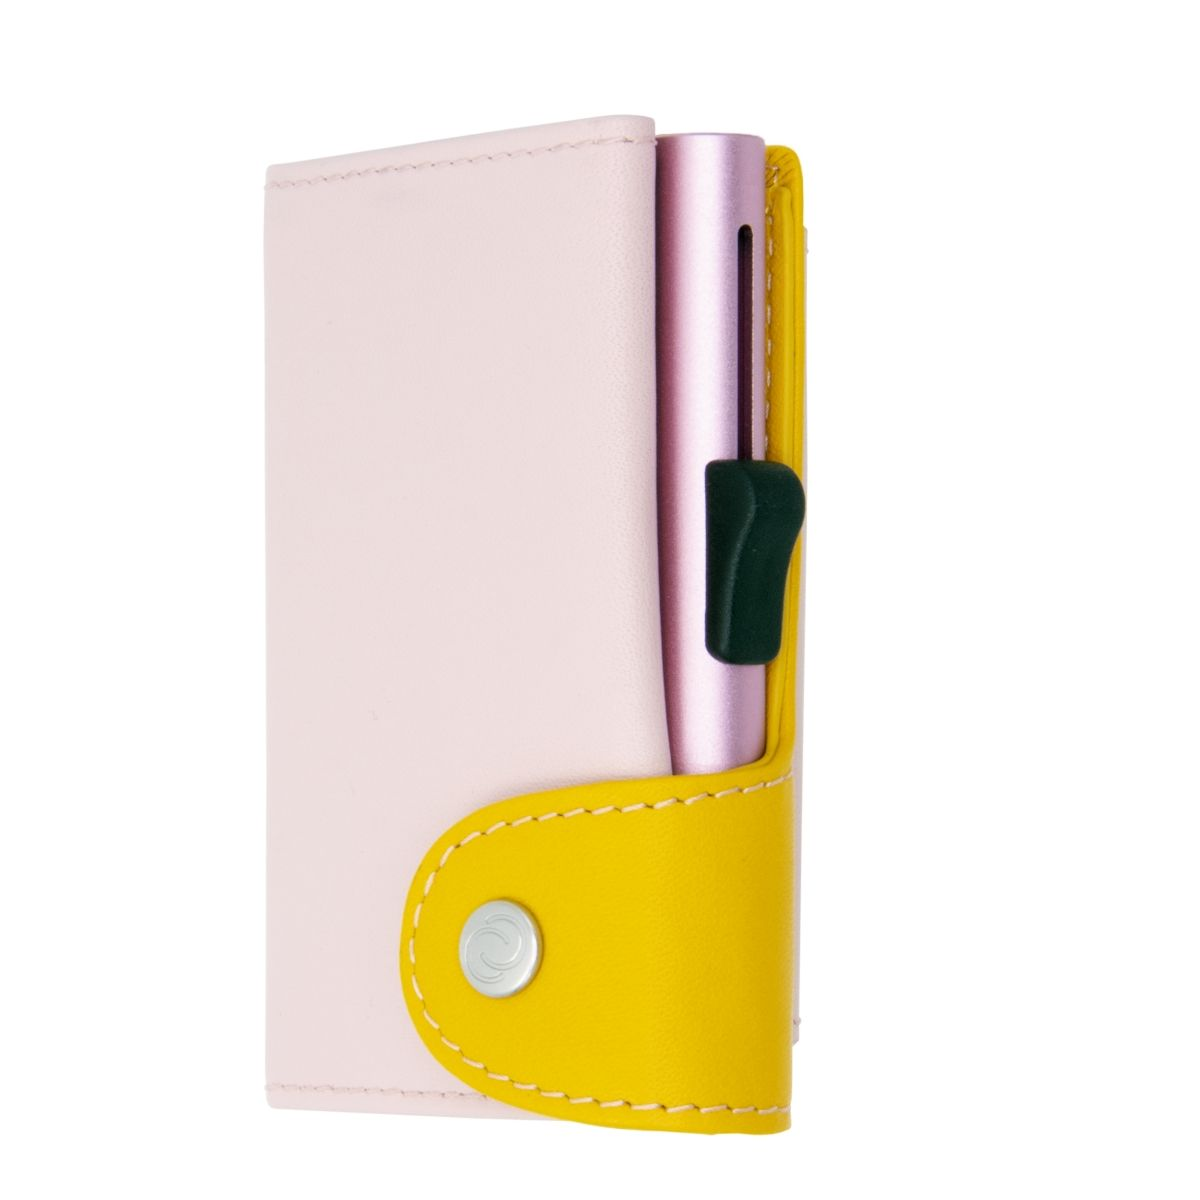 C-Secure XL Aluminum Wallet with Genuine Leather and Coins Pocket - Blush/Saffron